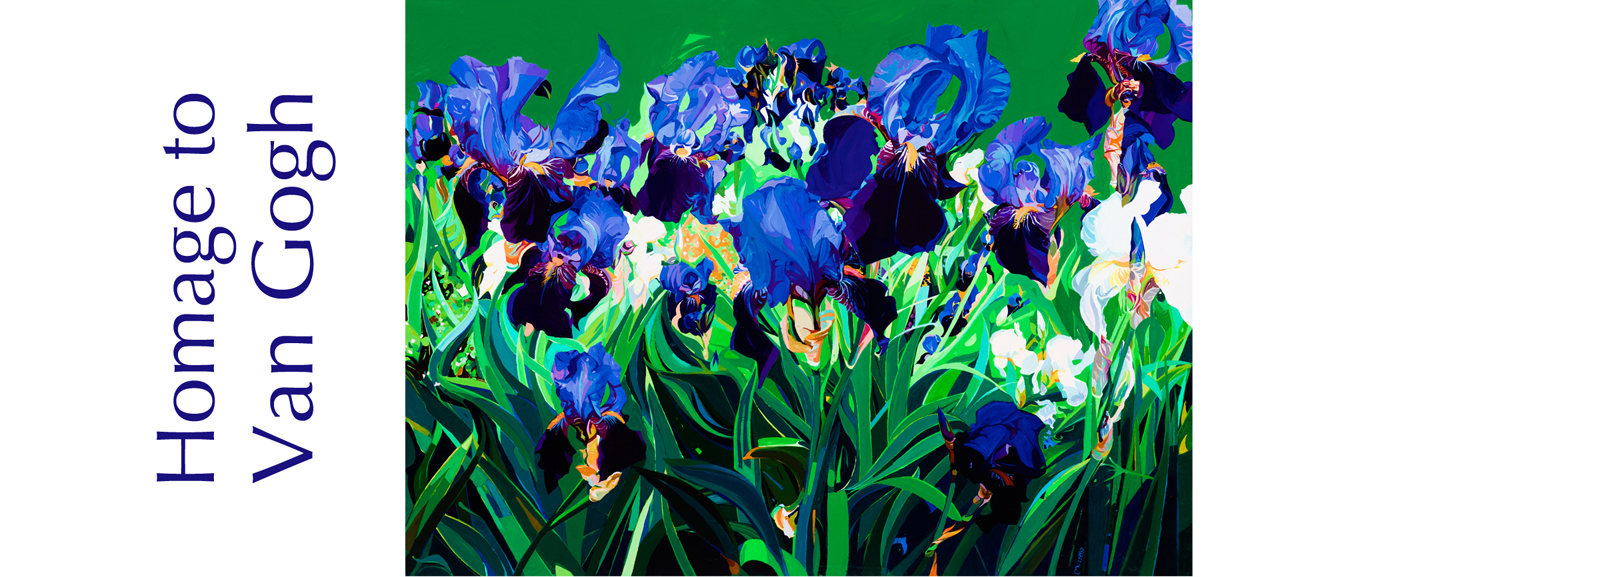 Irises Acrylic on  canvas 95cm x 70cm